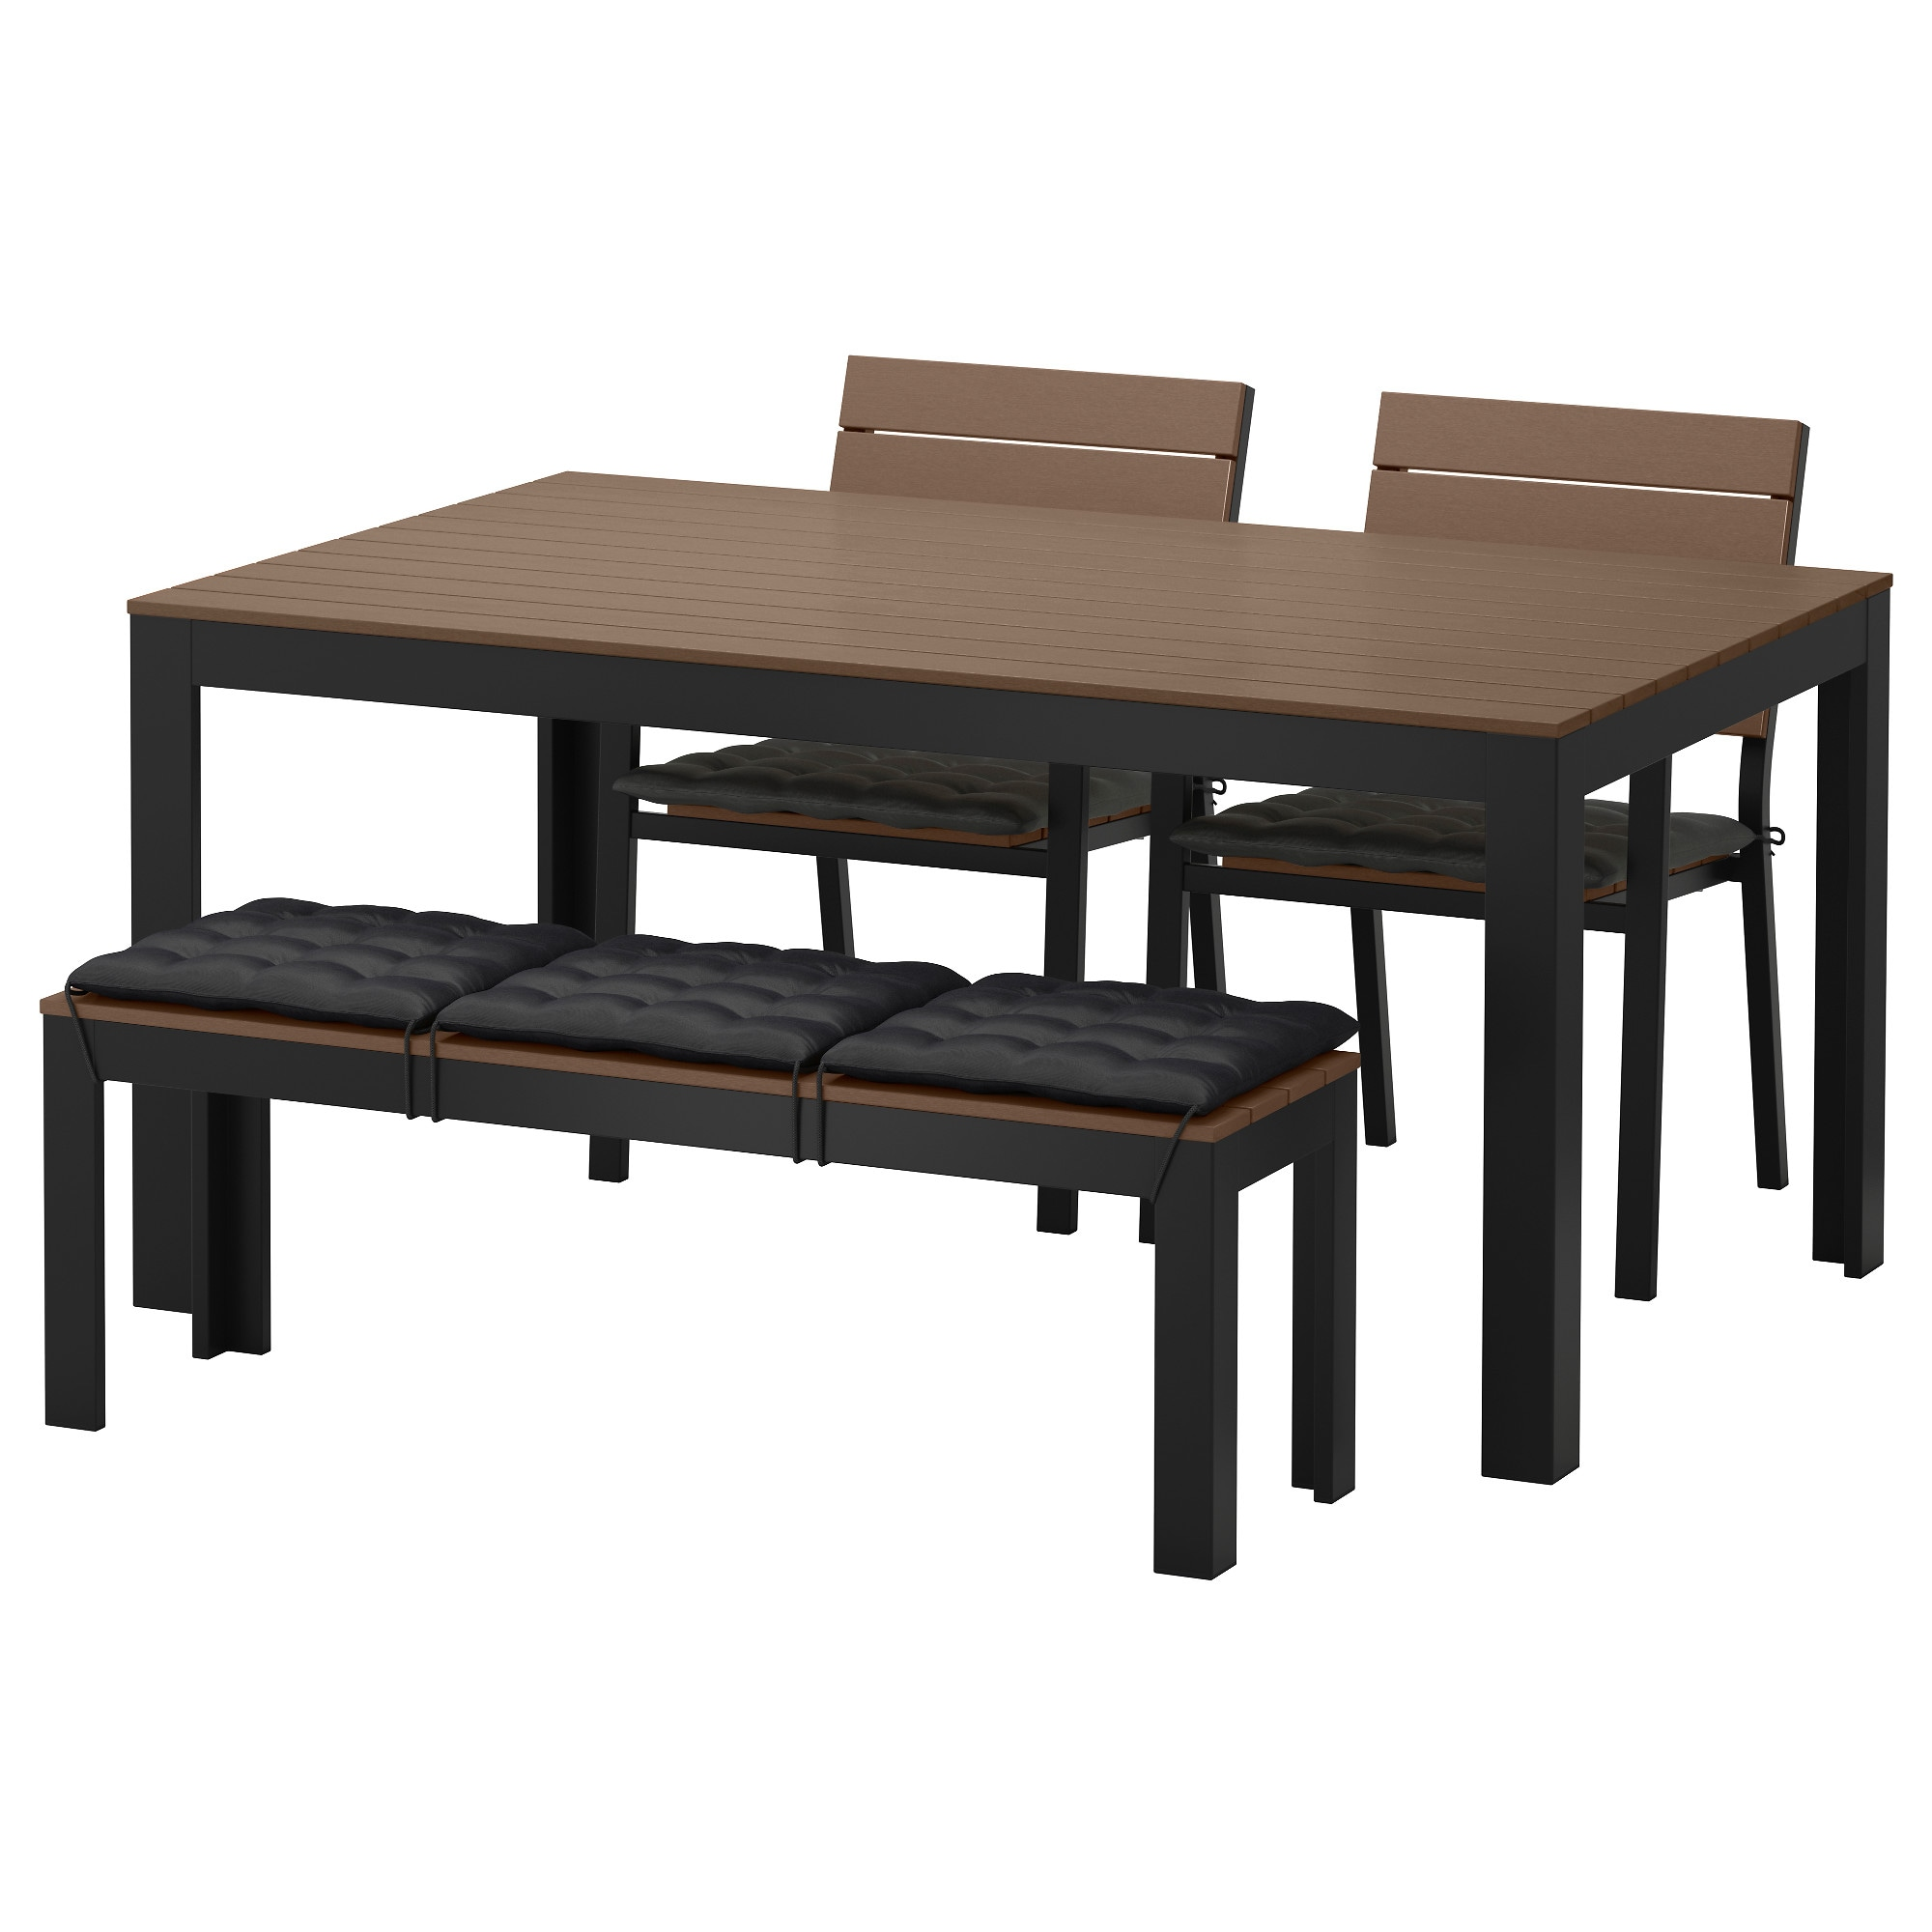 Merveilleux IKEA FALSTER Table+2 Chairs+ Bench, Outdoor